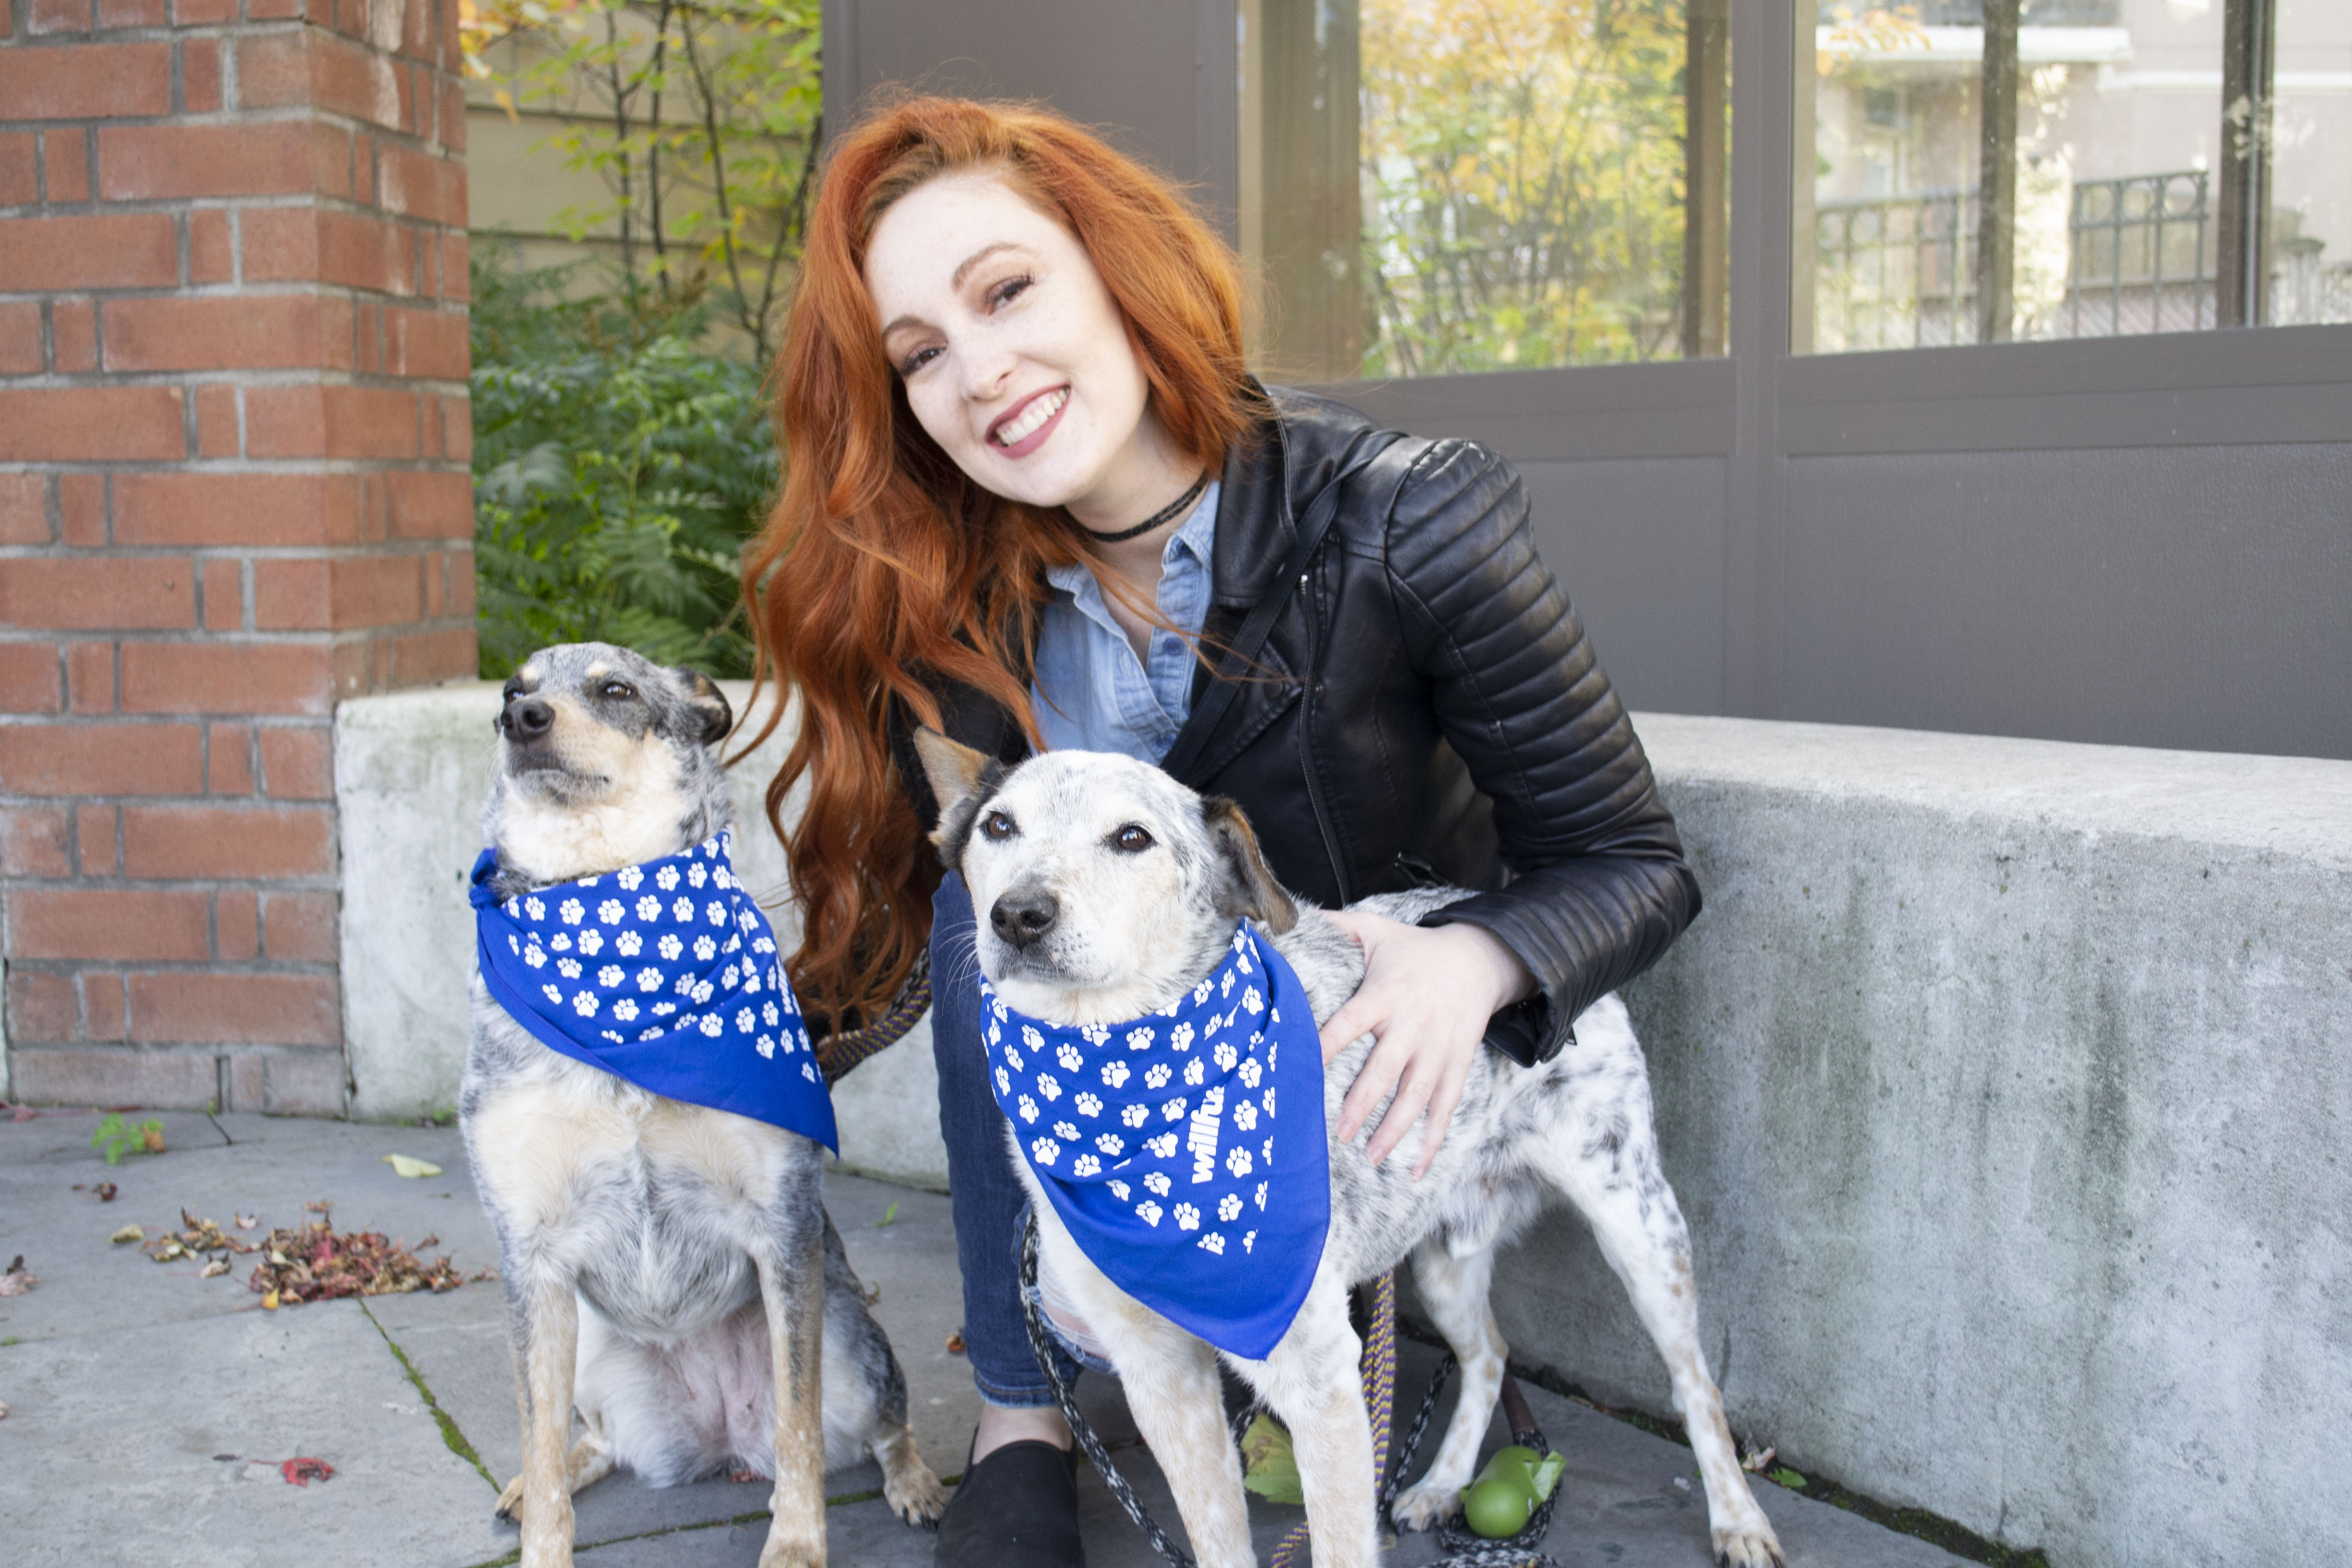 Redemption Paws Founder and her adopted dogs - Indie Nicole and Irwin